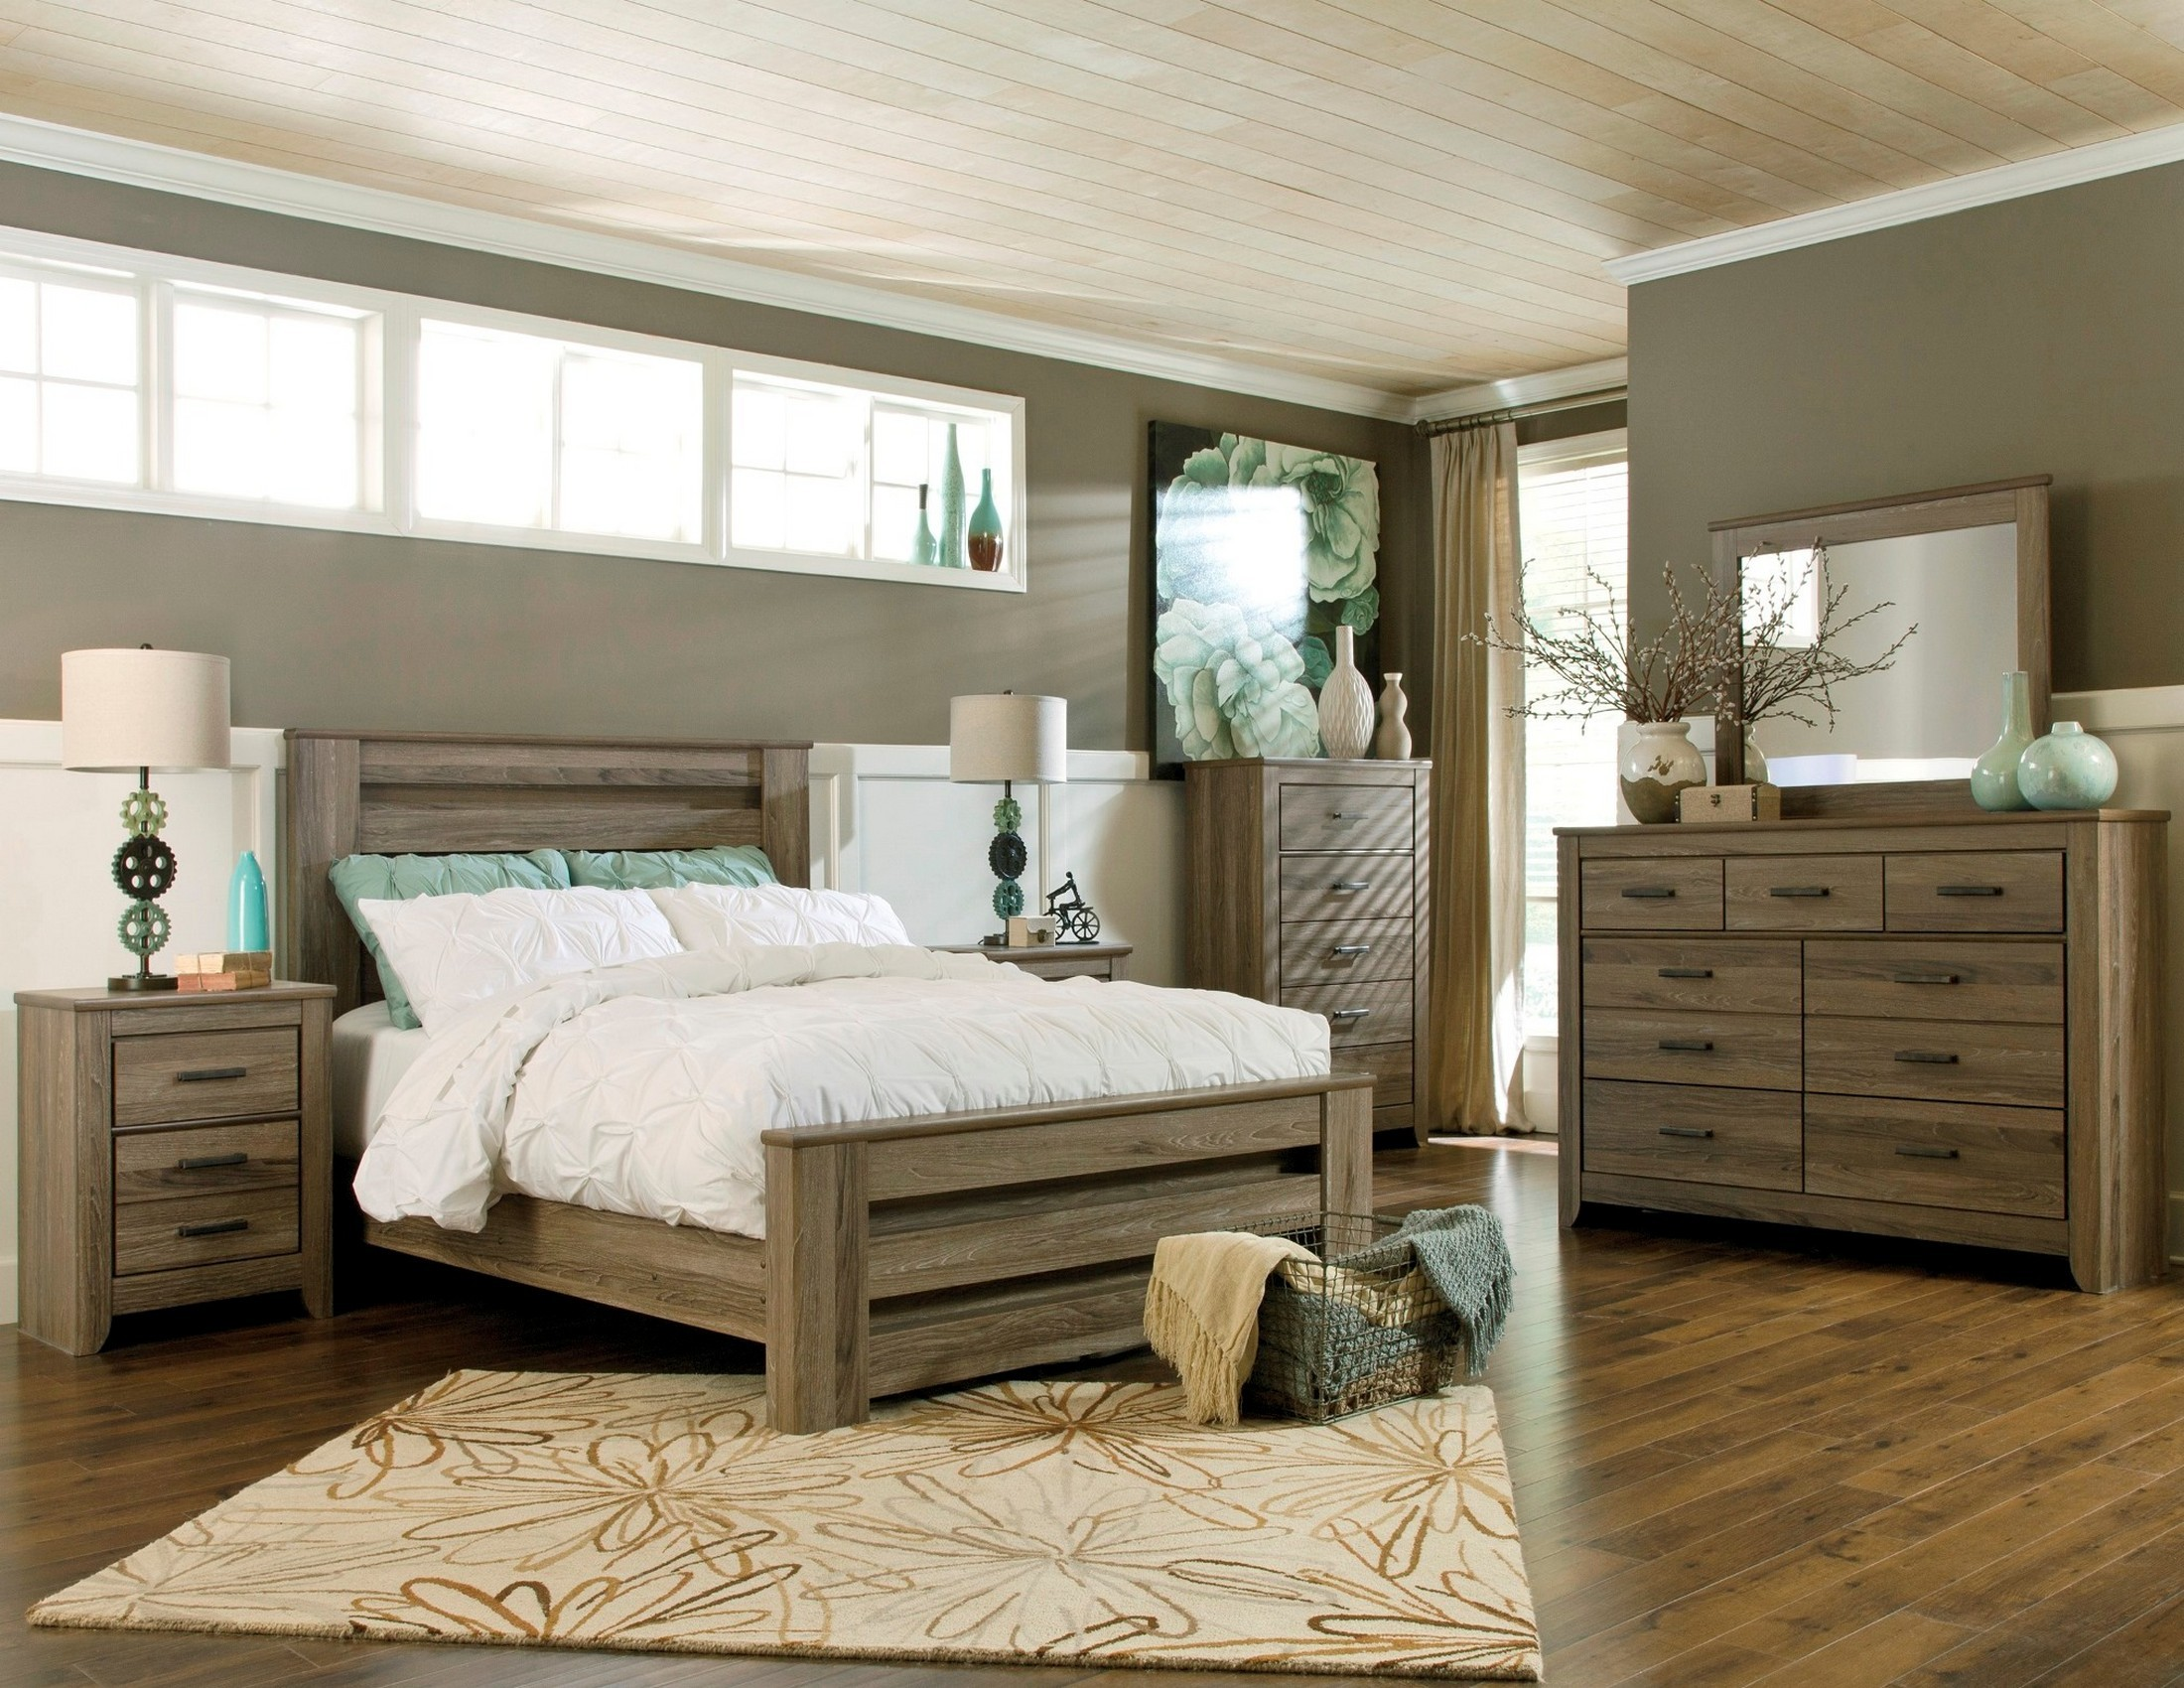 Zelen Poster Bedroom Set From Ashley B248 67 64 98 Coleman Furniture